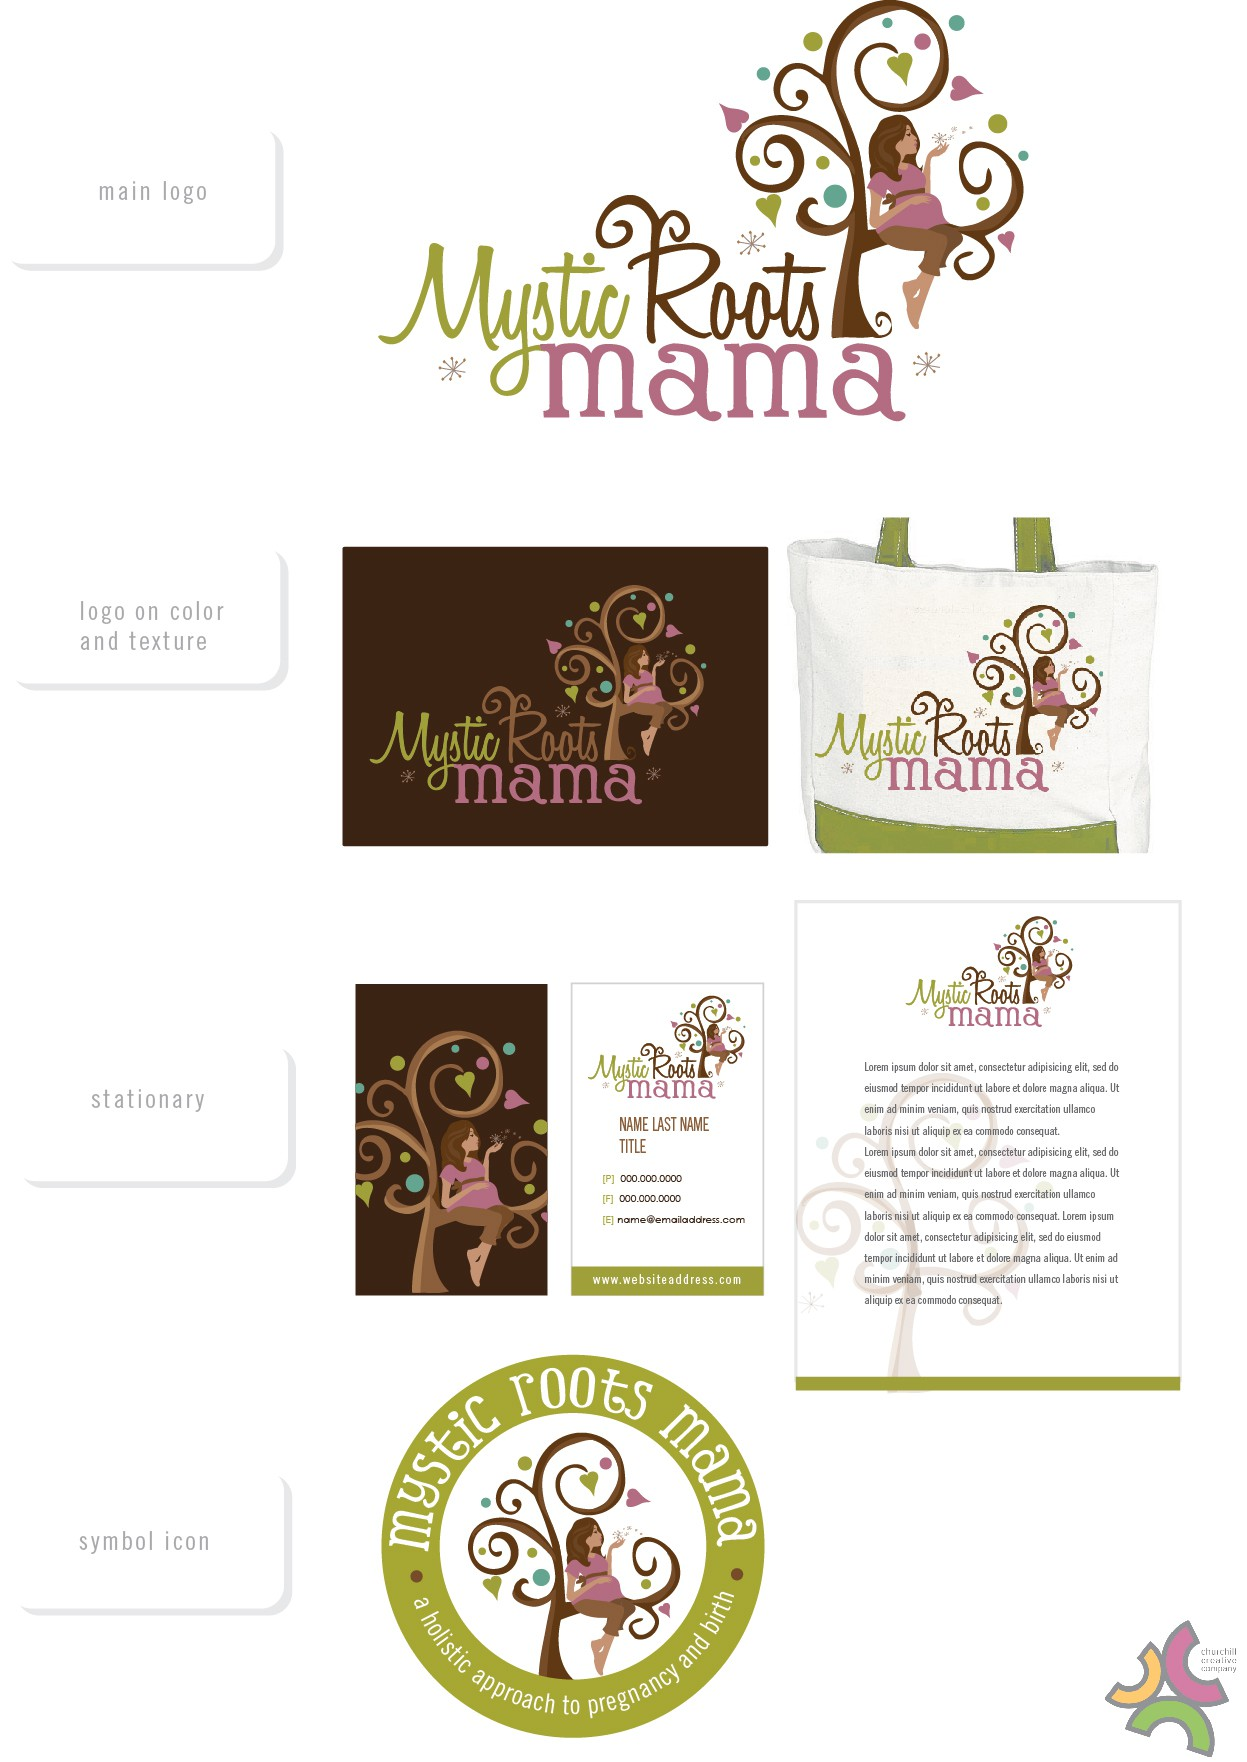 logo for Mystic Roots Mama